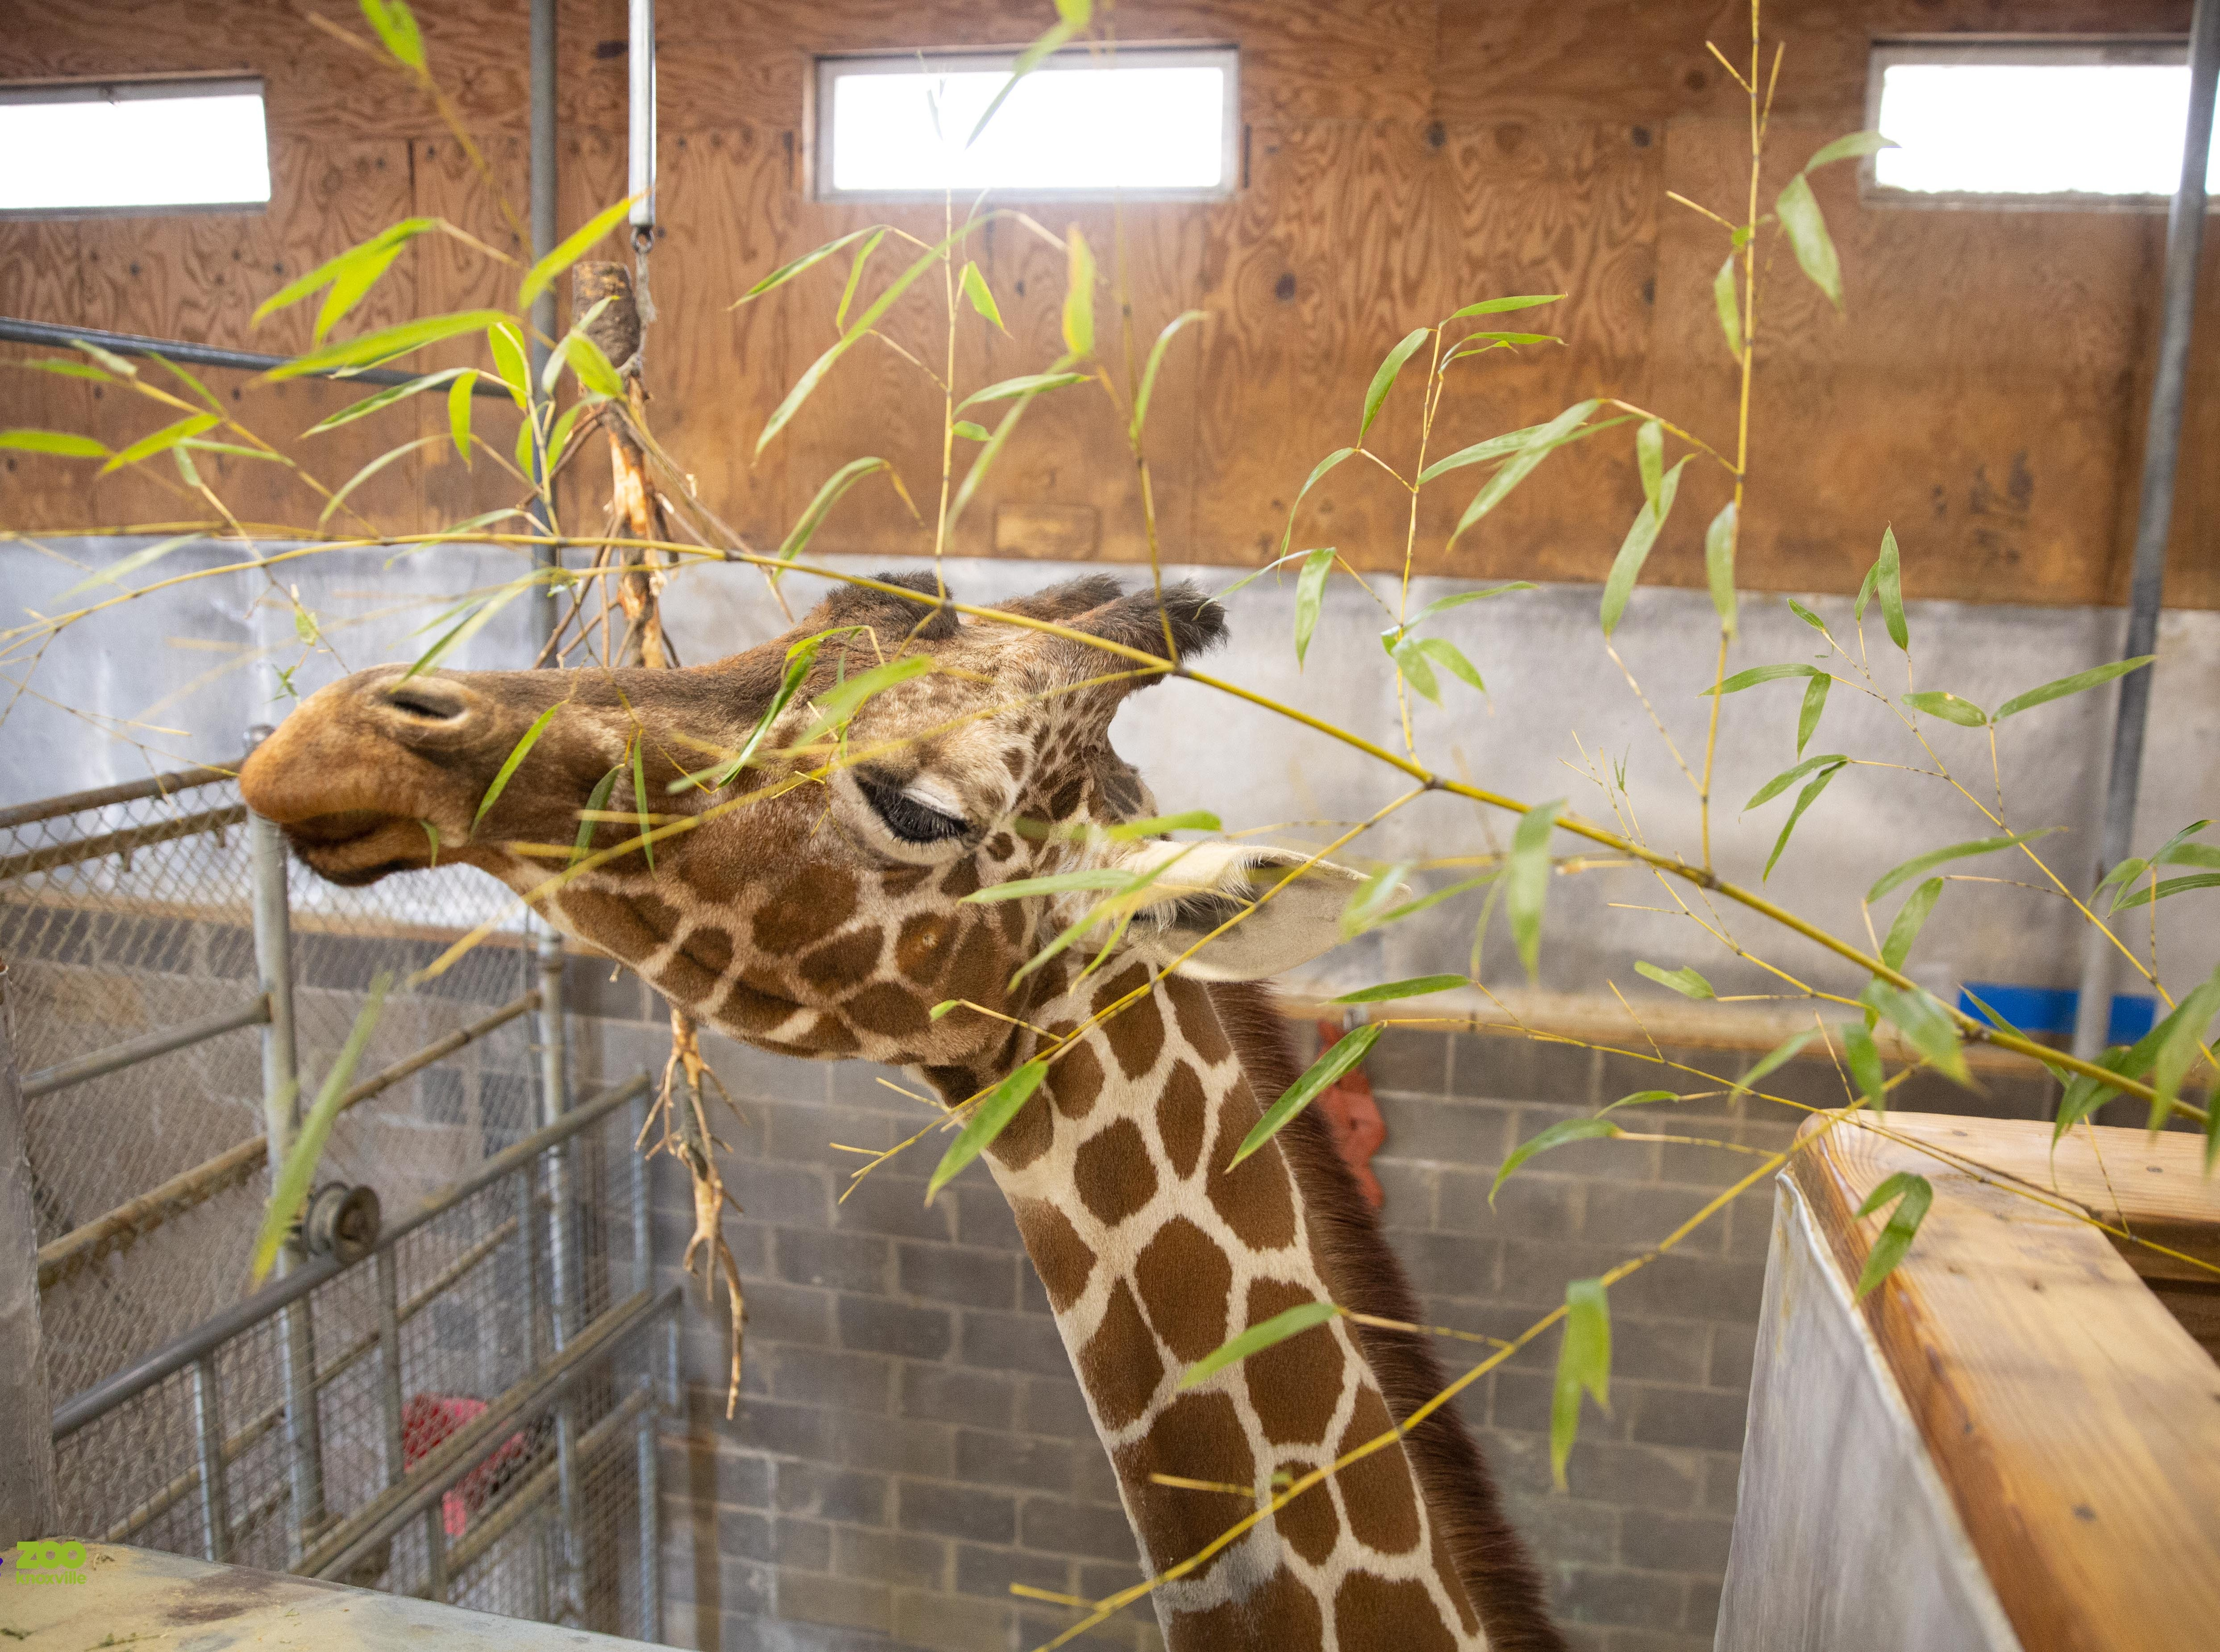 Giraffe Patches inside the giraffe barn at Zoo Knoxville February 1, 2019.